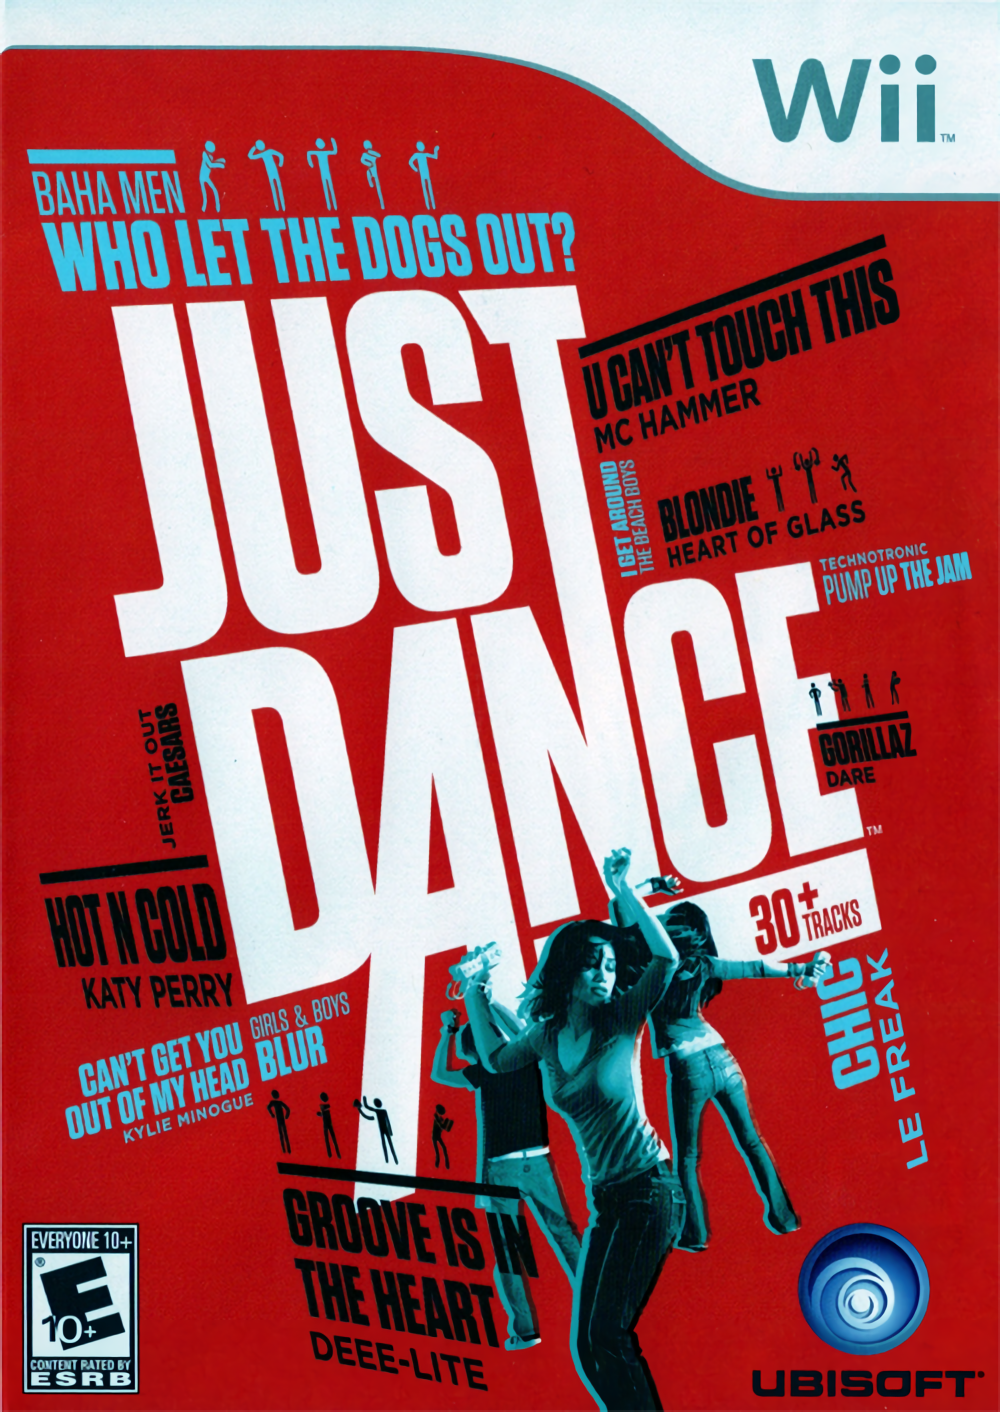 Just Dance (video game)